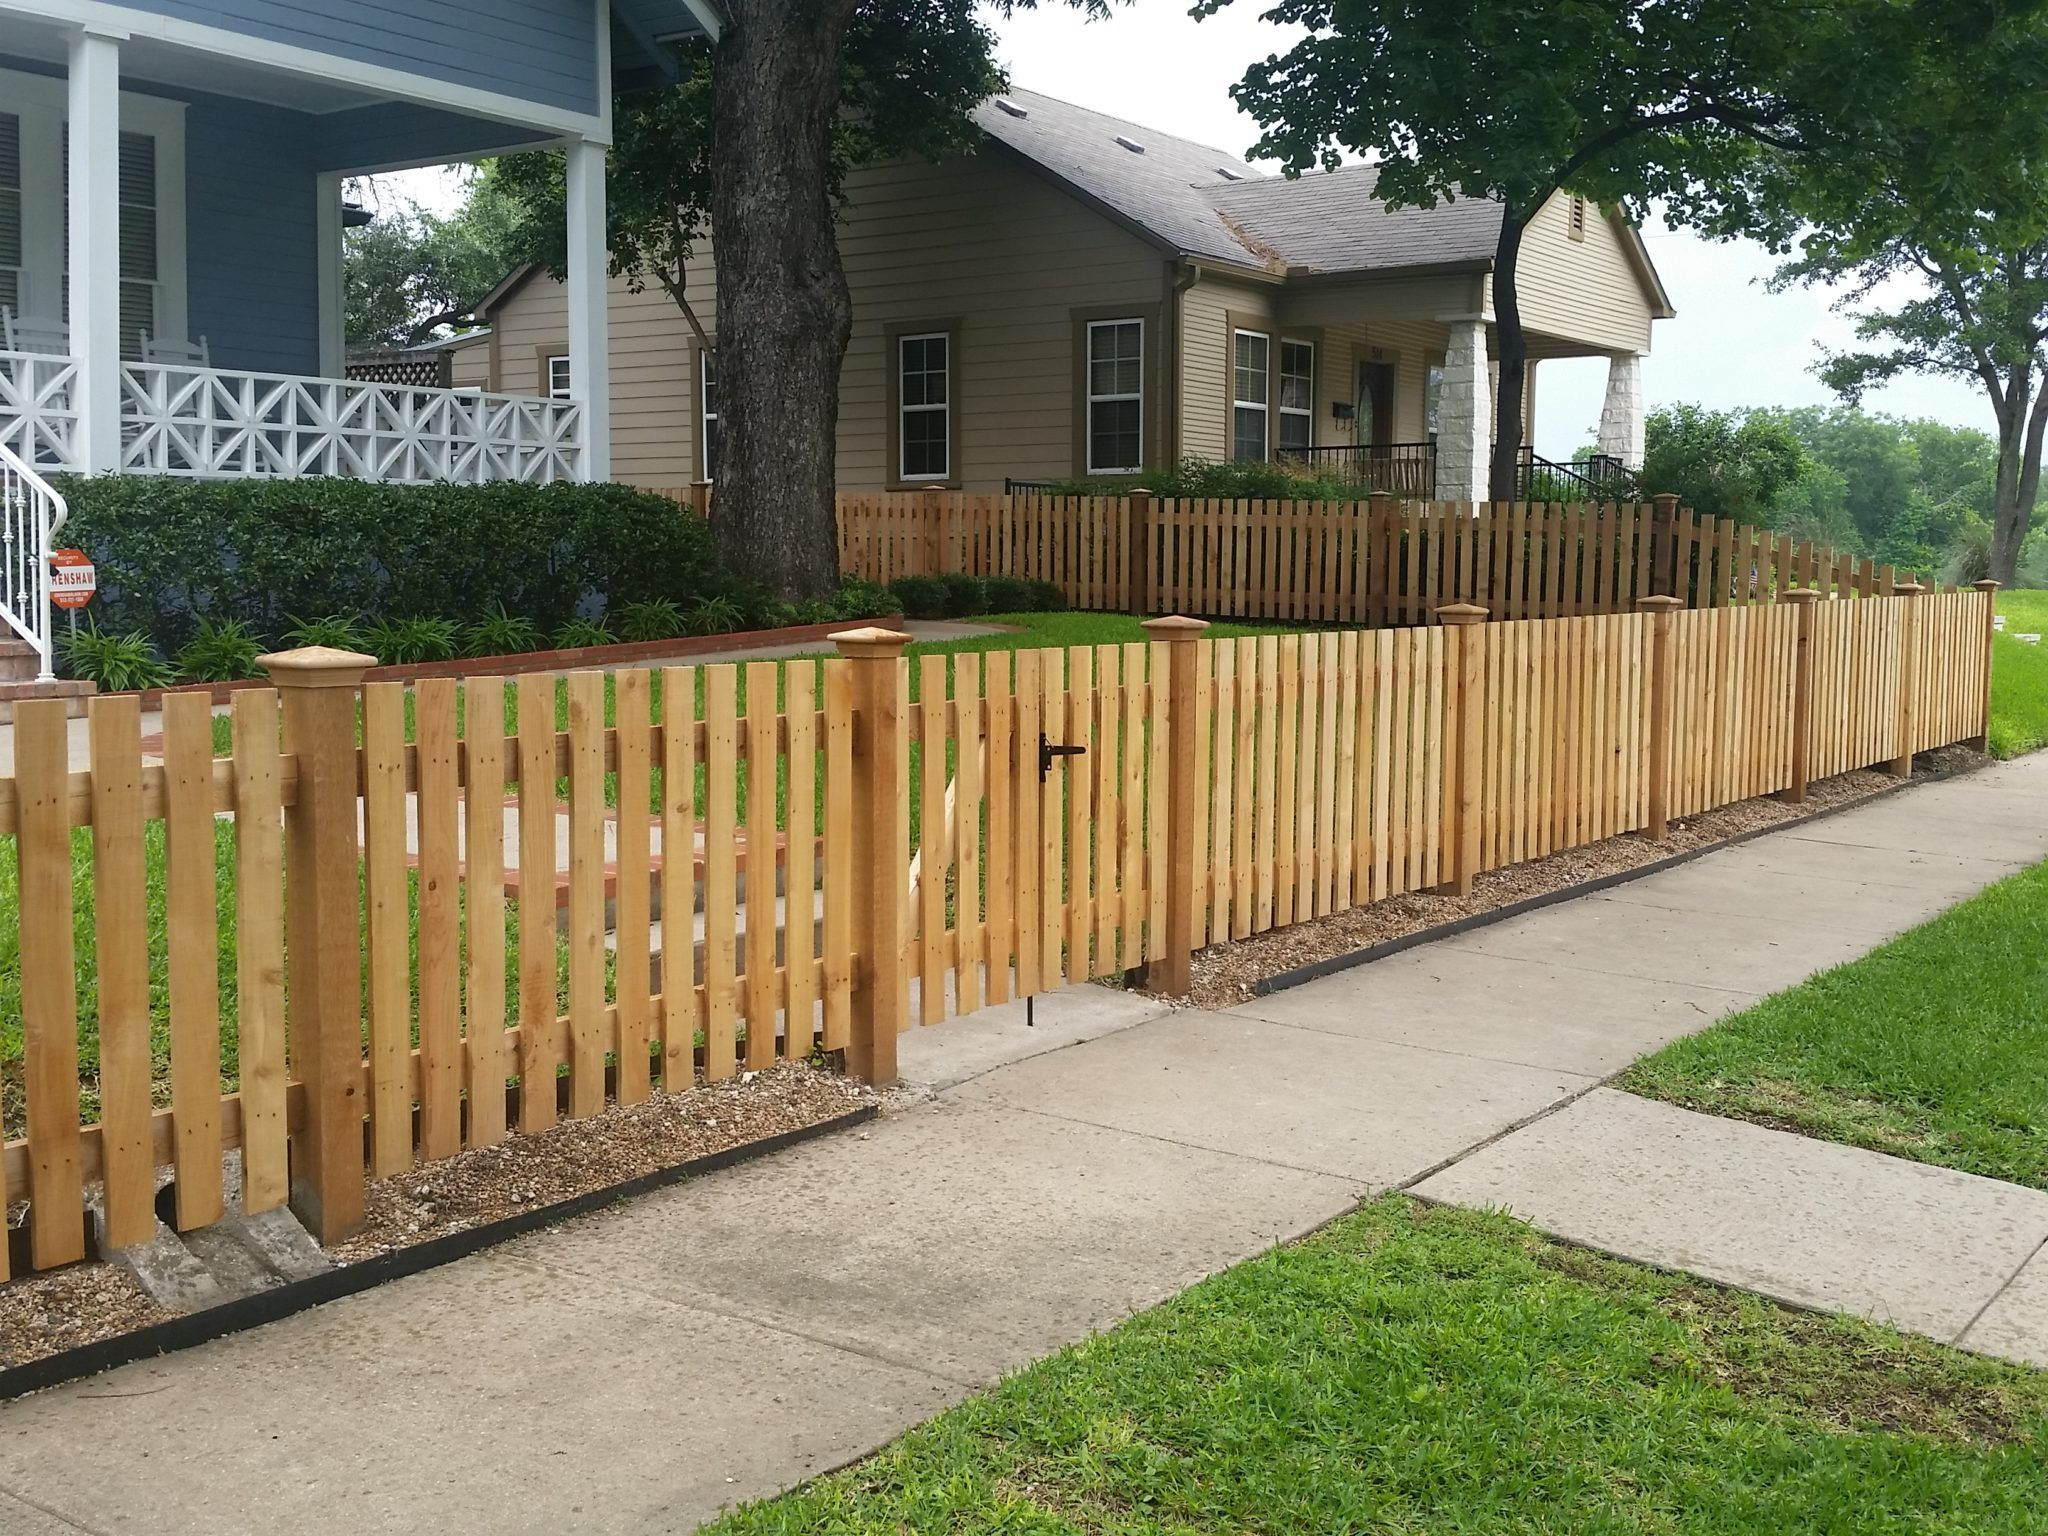 Custom Wood Fence Austin Tx Horizontal Cedar Picket Fences Sierra Fence Inc Wood Fence Design Wood Fence Outdoor Decor Backyard